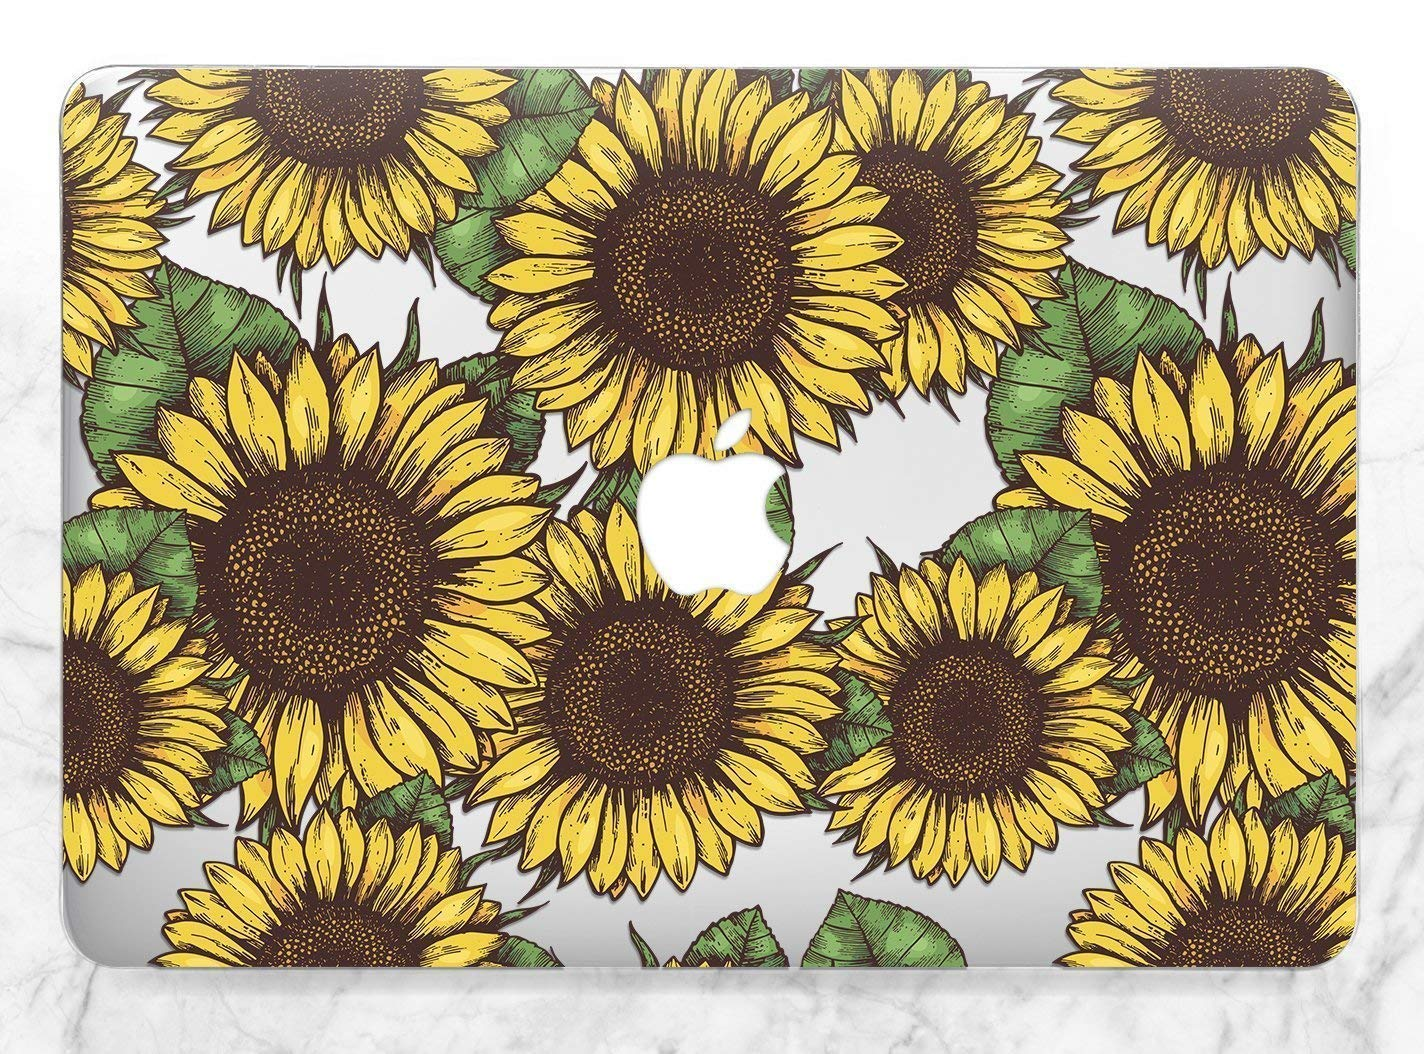 B07CSV73F5 Vintage Floral Yellow Summer Sunflowers Hard Plastic Cover Case For Apple Macbook Air Pro 11 12 13 15 2016 2017 2018 Inch Retina Touch Bar 81A7k4LbS2BL